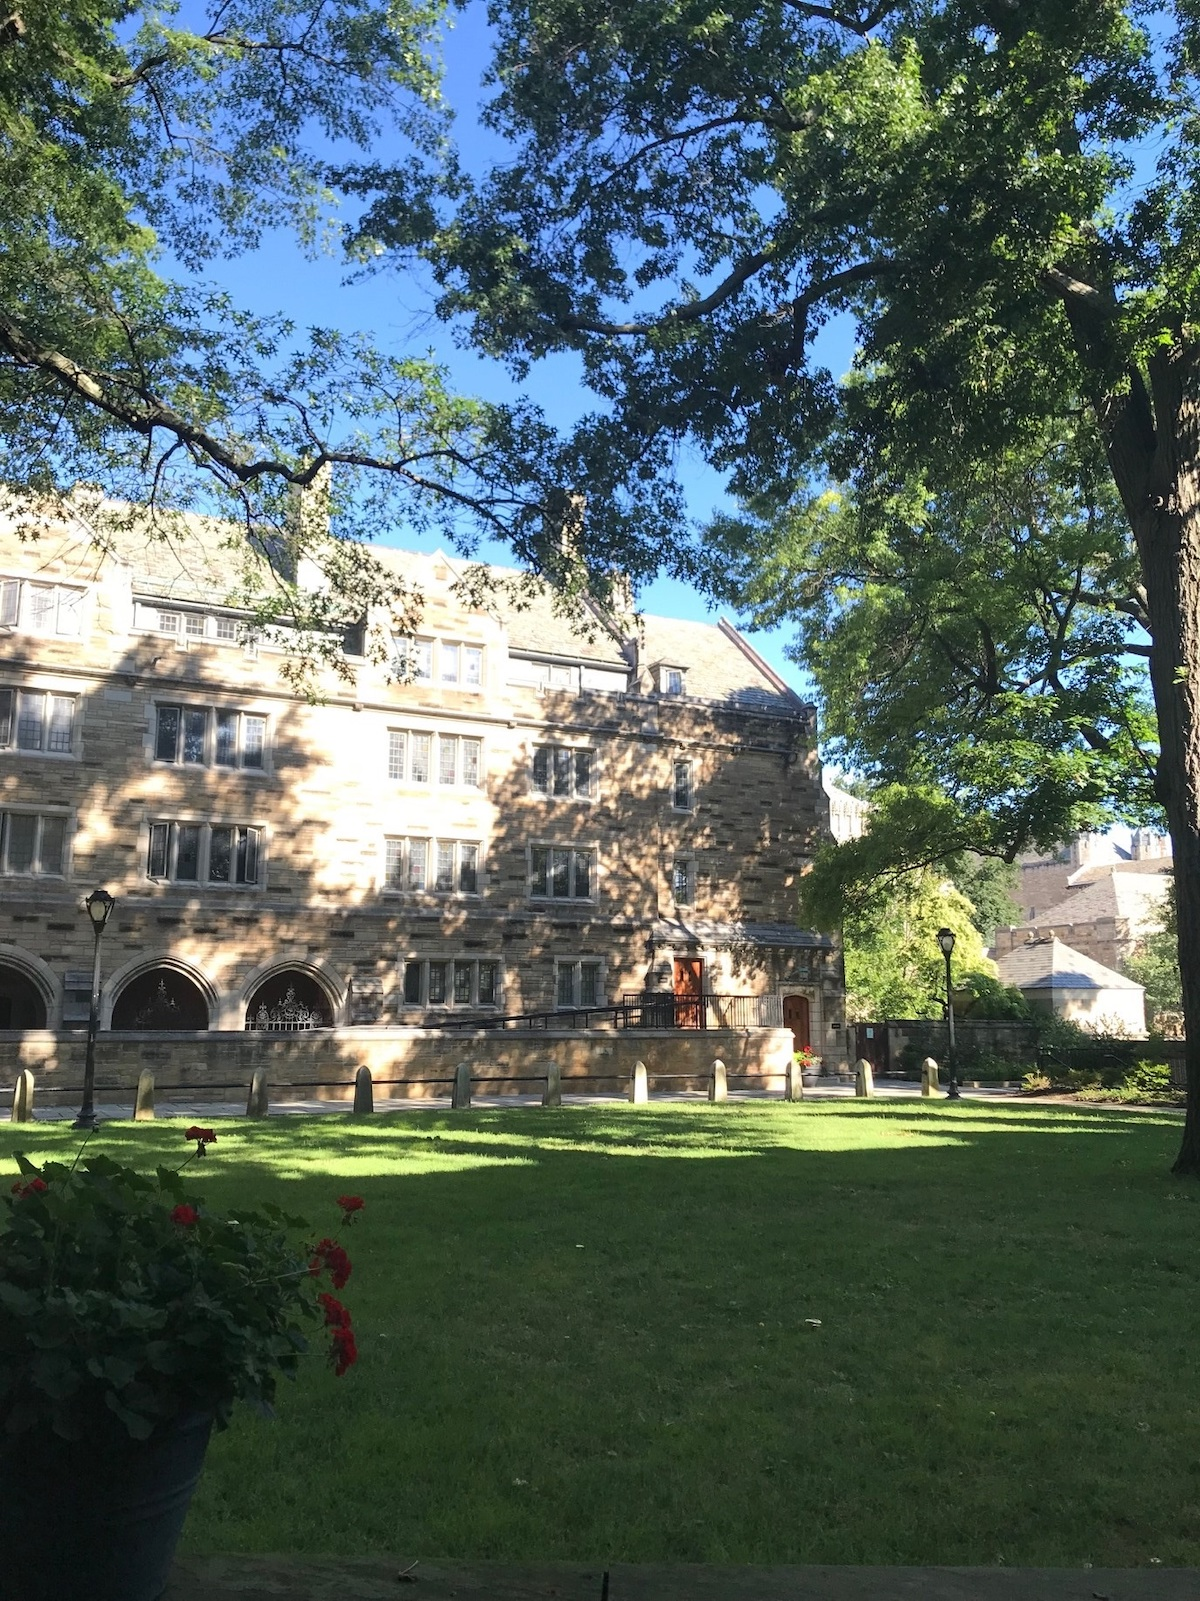 The courtyard of the dorms at Berkeley College - it even has a basement basketball court!